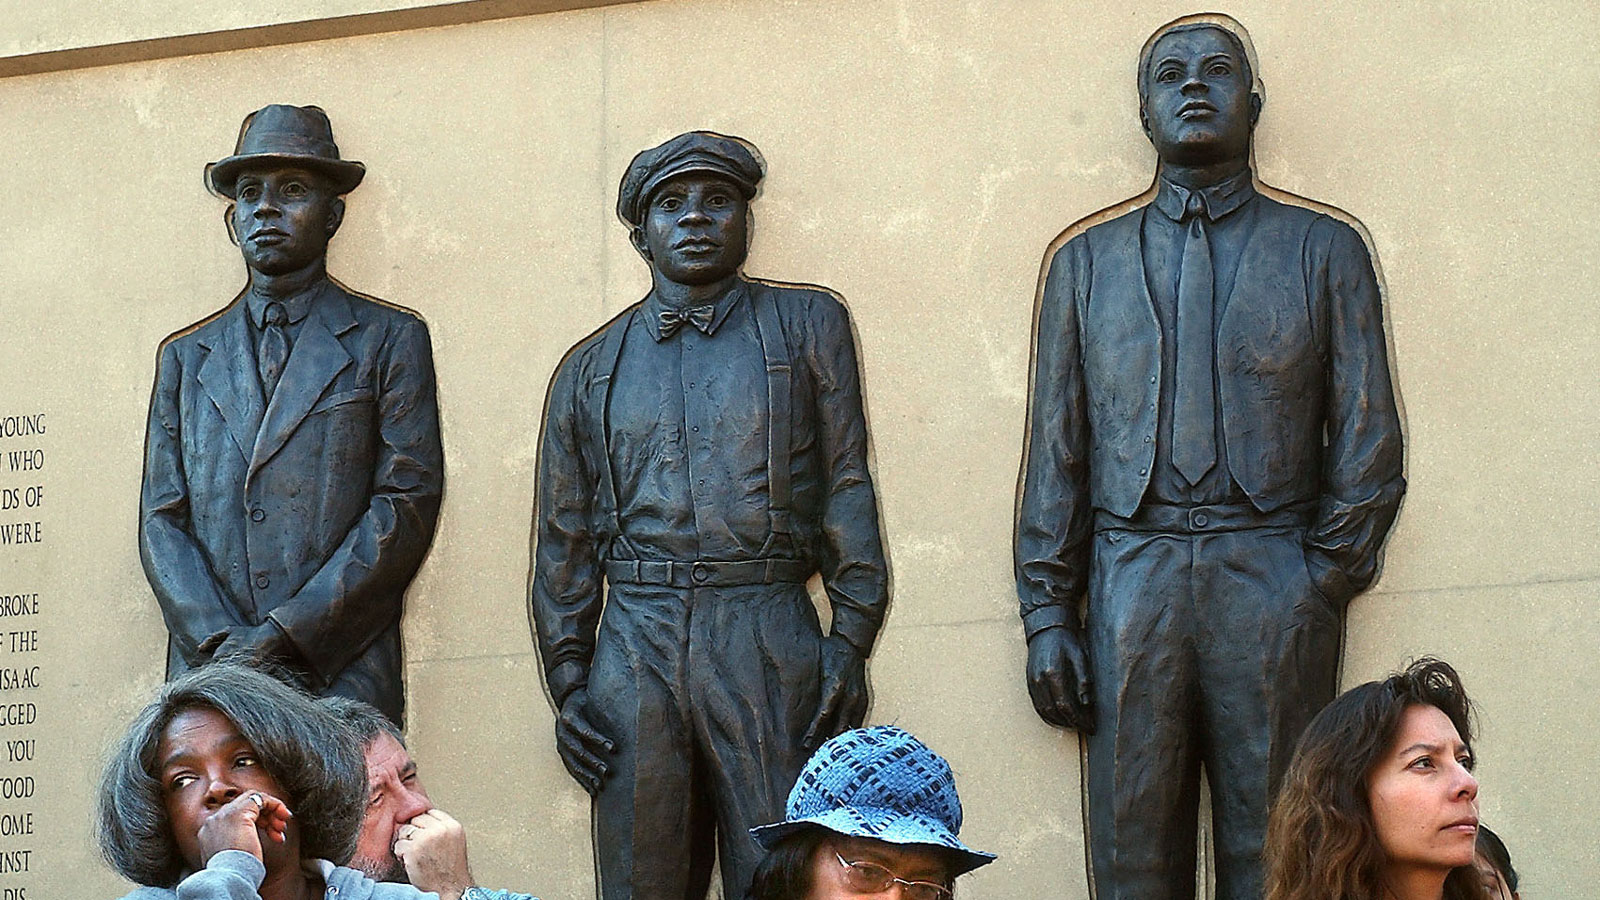 The bronze figures of Elias Clayton, Elmer Jackson and Isaac McGhie, three black circus workers who were lynched the night of June 15, 1920.